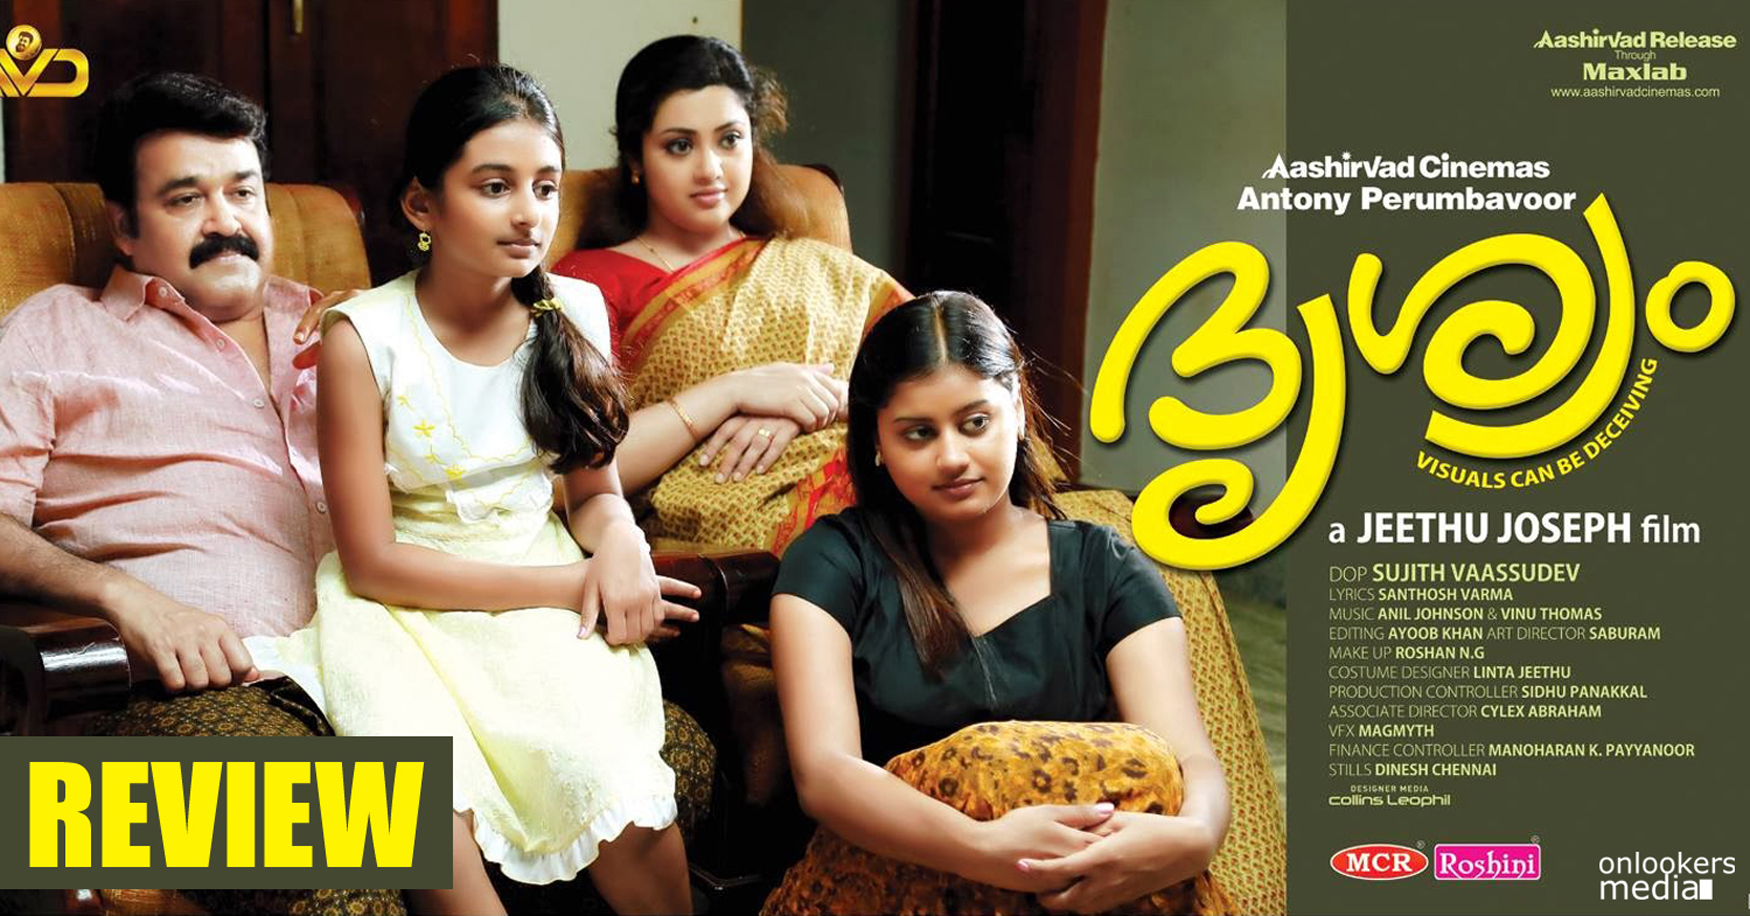 Drishyam Review-Report-Collection-Mohanlal-Jeethu Joseph-Malayalam Movie 2013-Onlookers Media